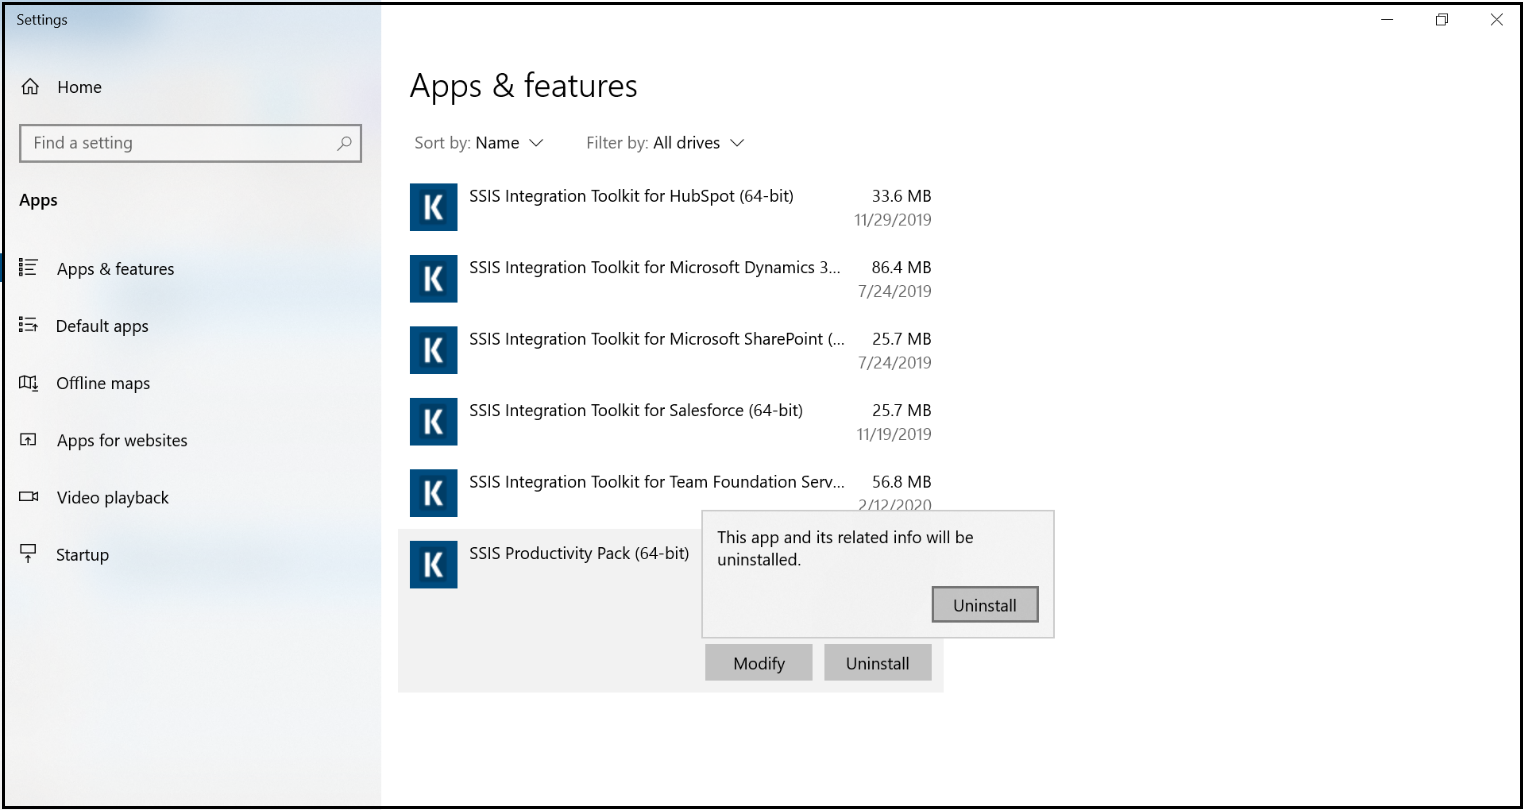 Windows Control Panel - Easiest Way to Uninstall KingswaySoft